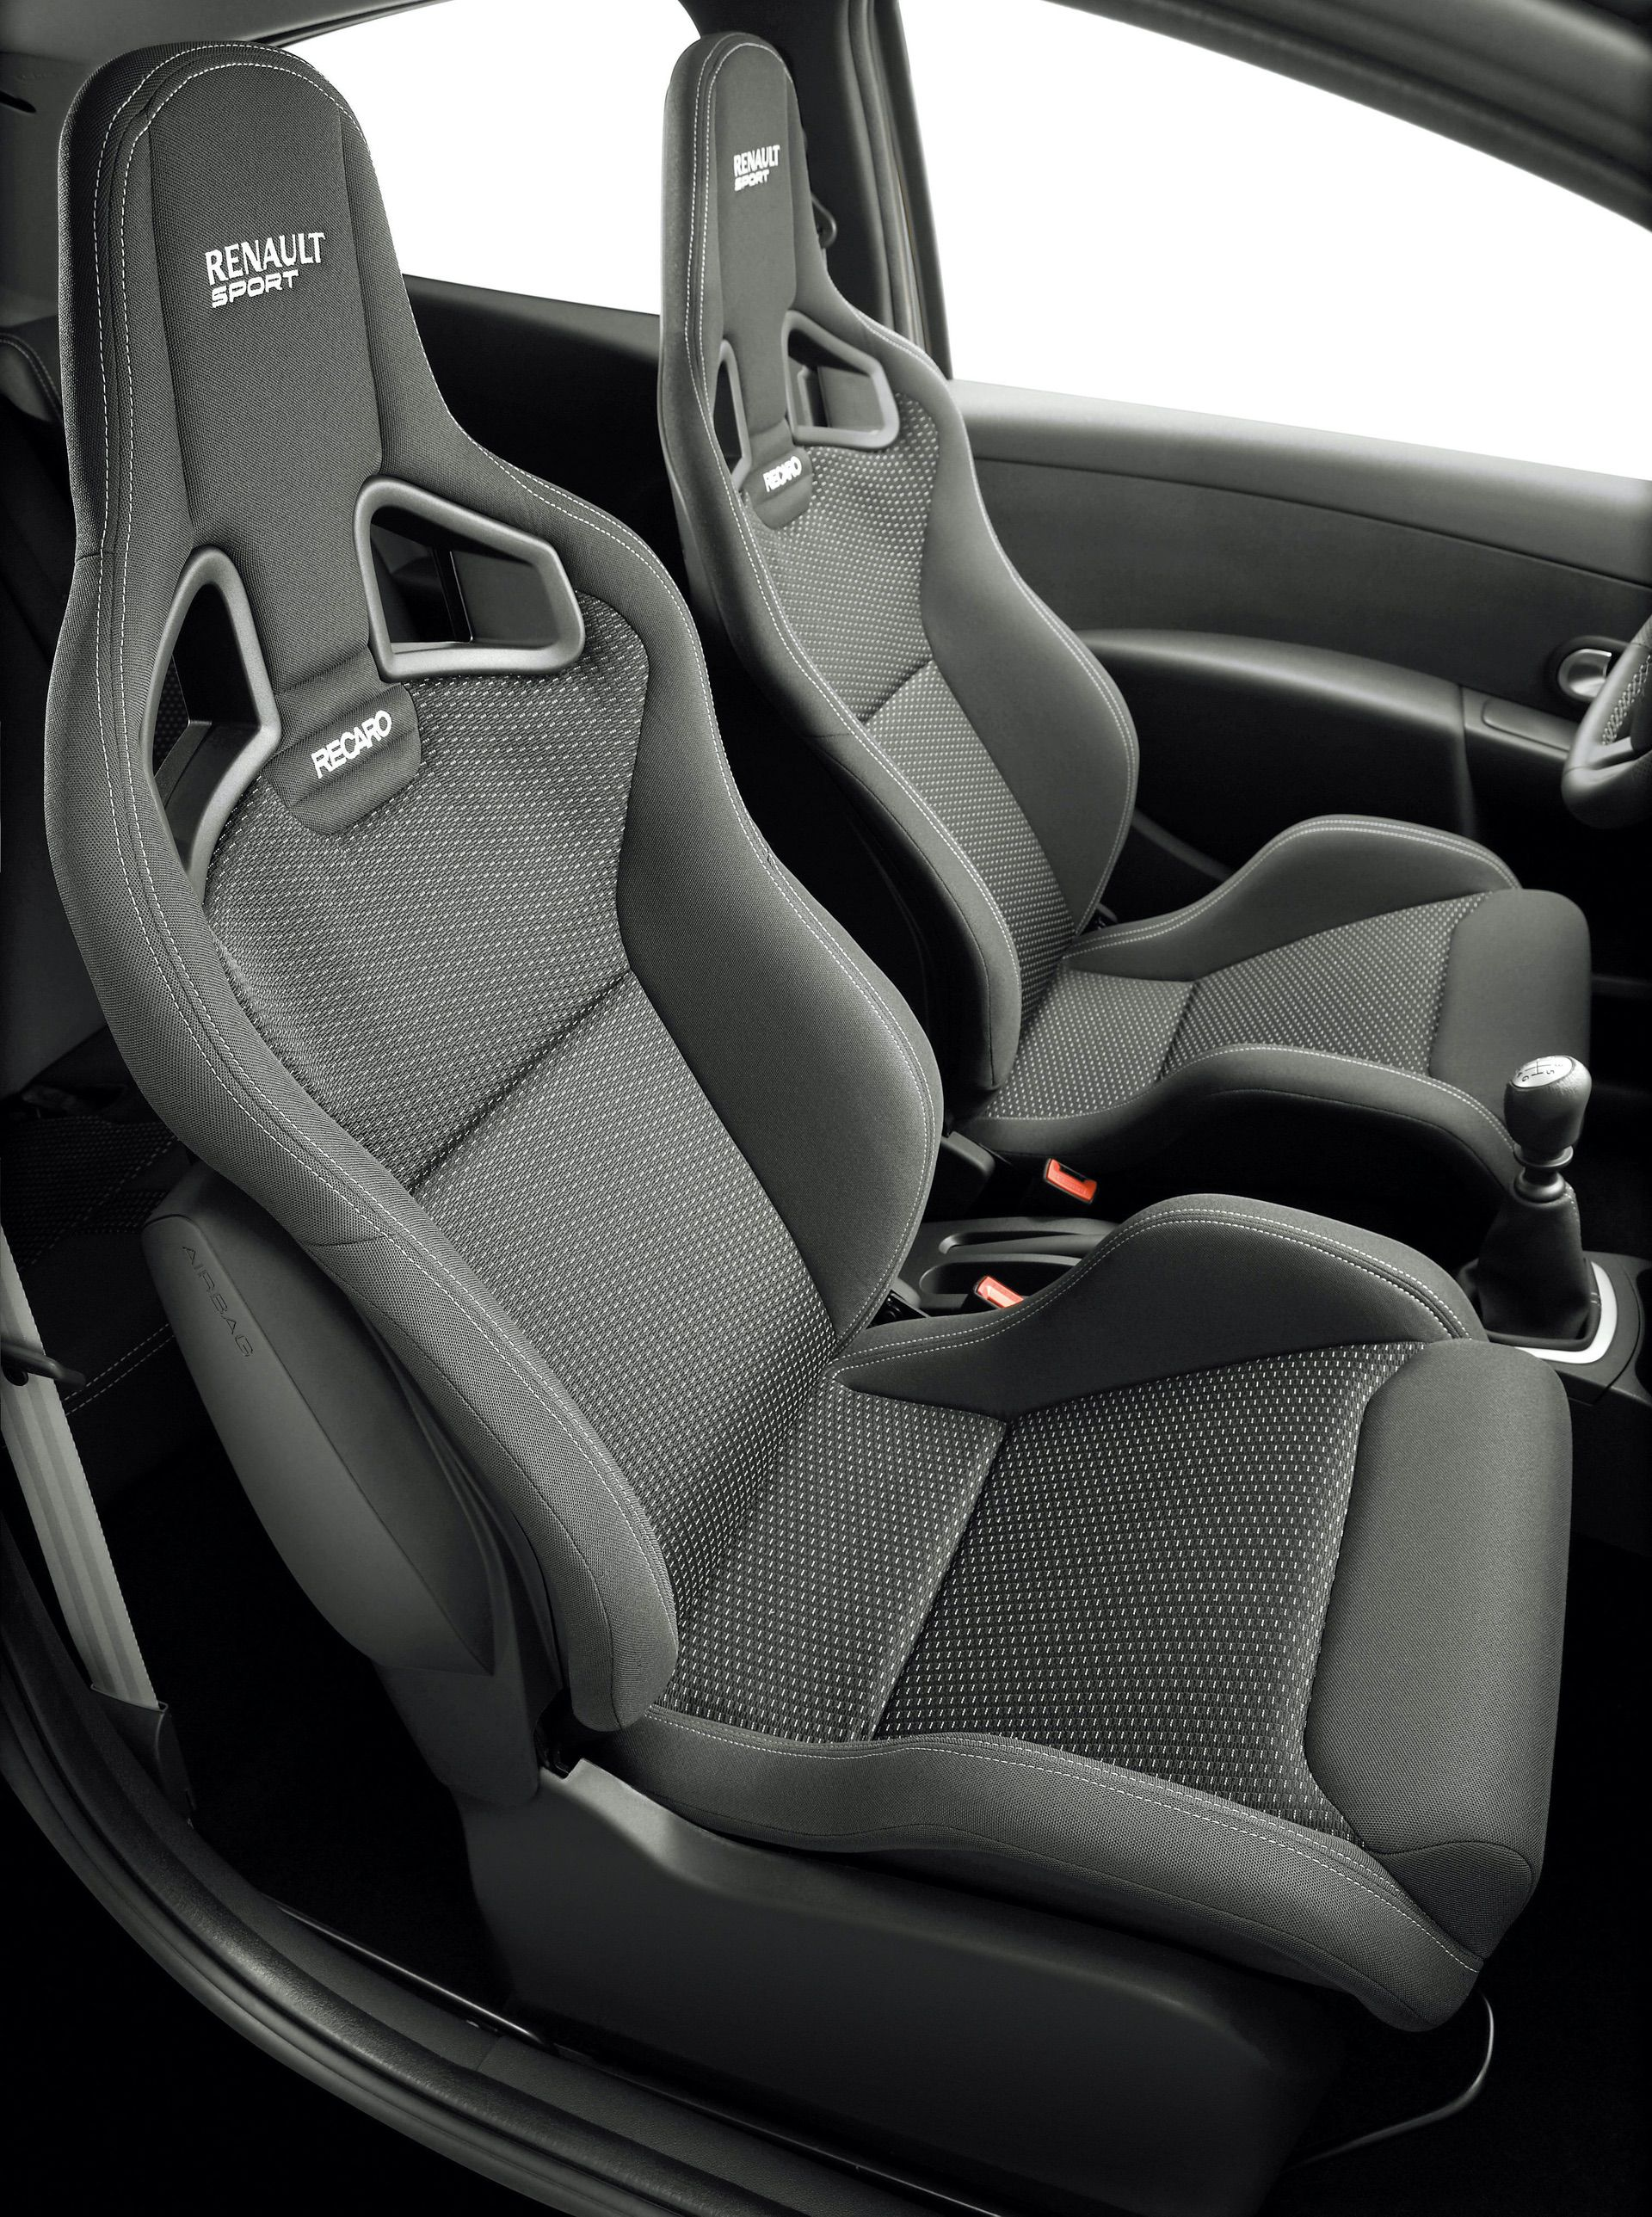 2020-30-years-of-Renault-CLIO-Renault-CLIO-III-2005-2012-16